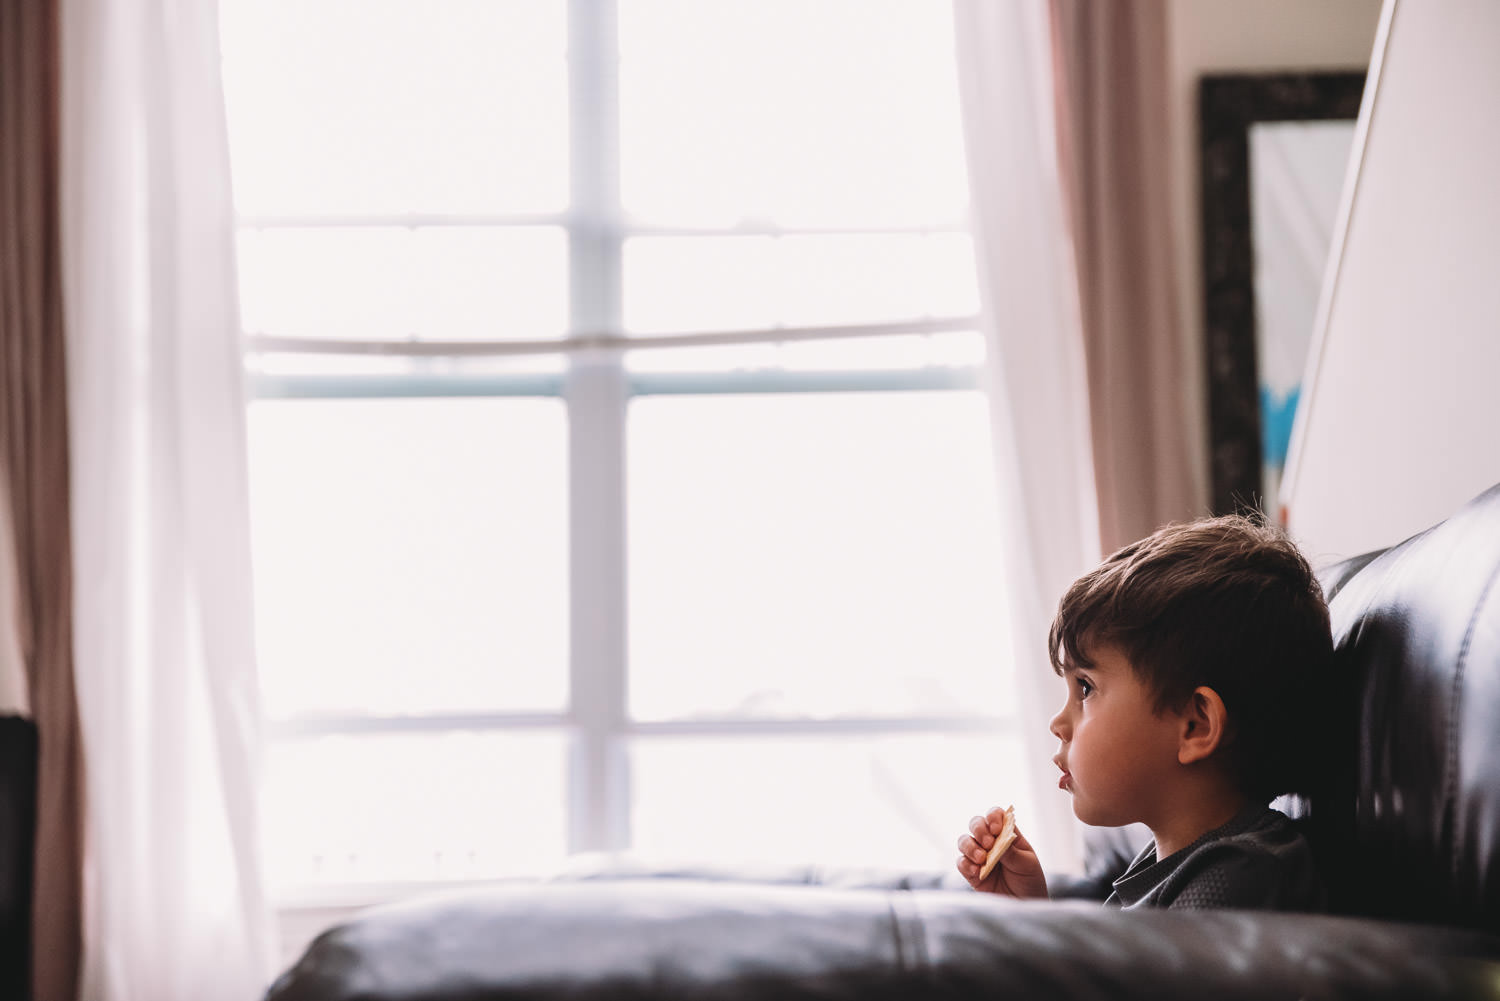 A little boy sits and eats a cracker while watching TV.